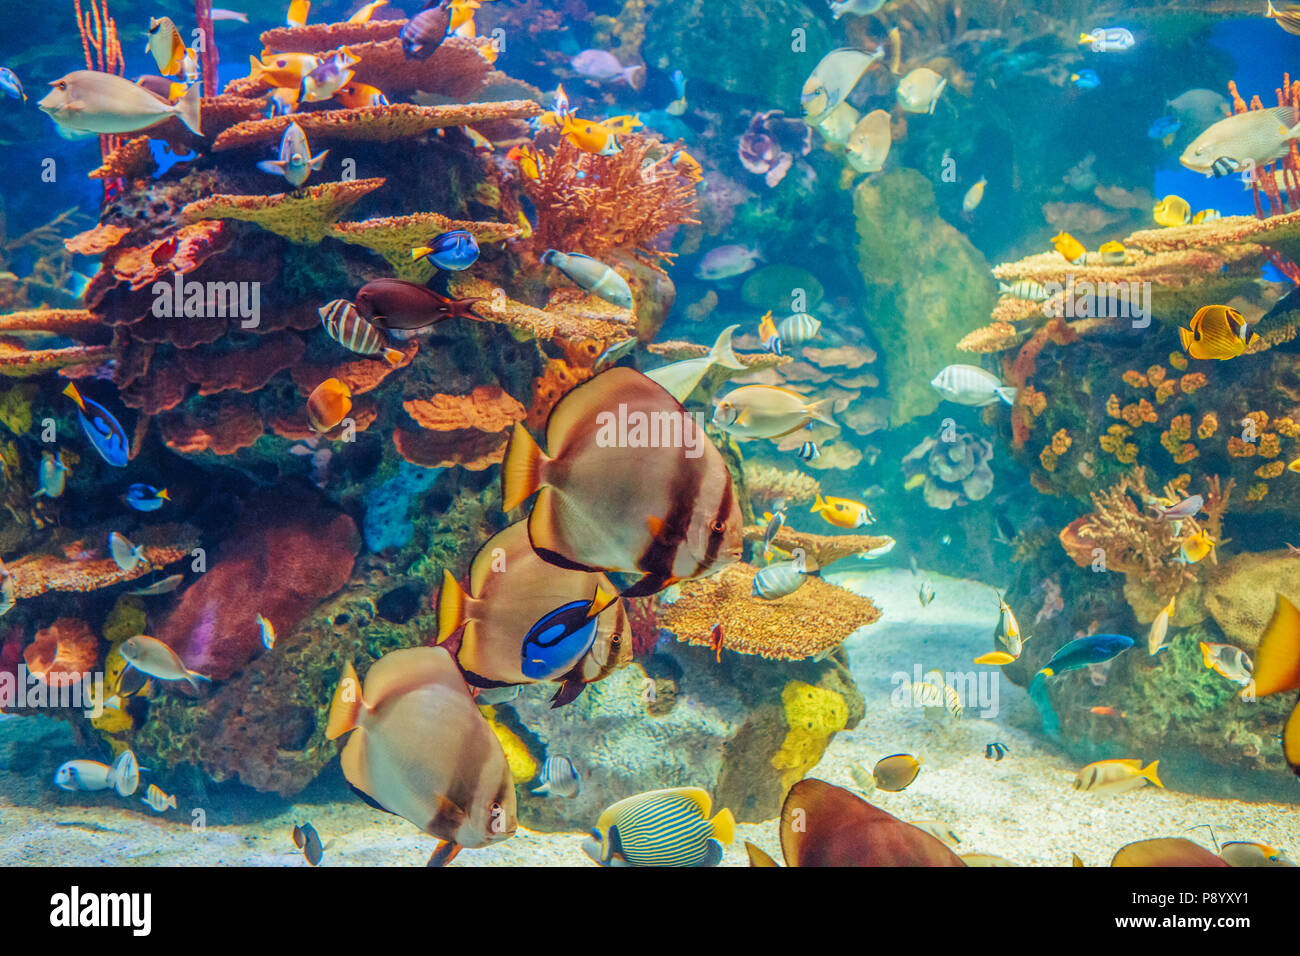 Shoal group of many red yellow tropical fishes in blue water with coral reef, colorful underwater world, copyspace for text, background wallpaper - Stock Image